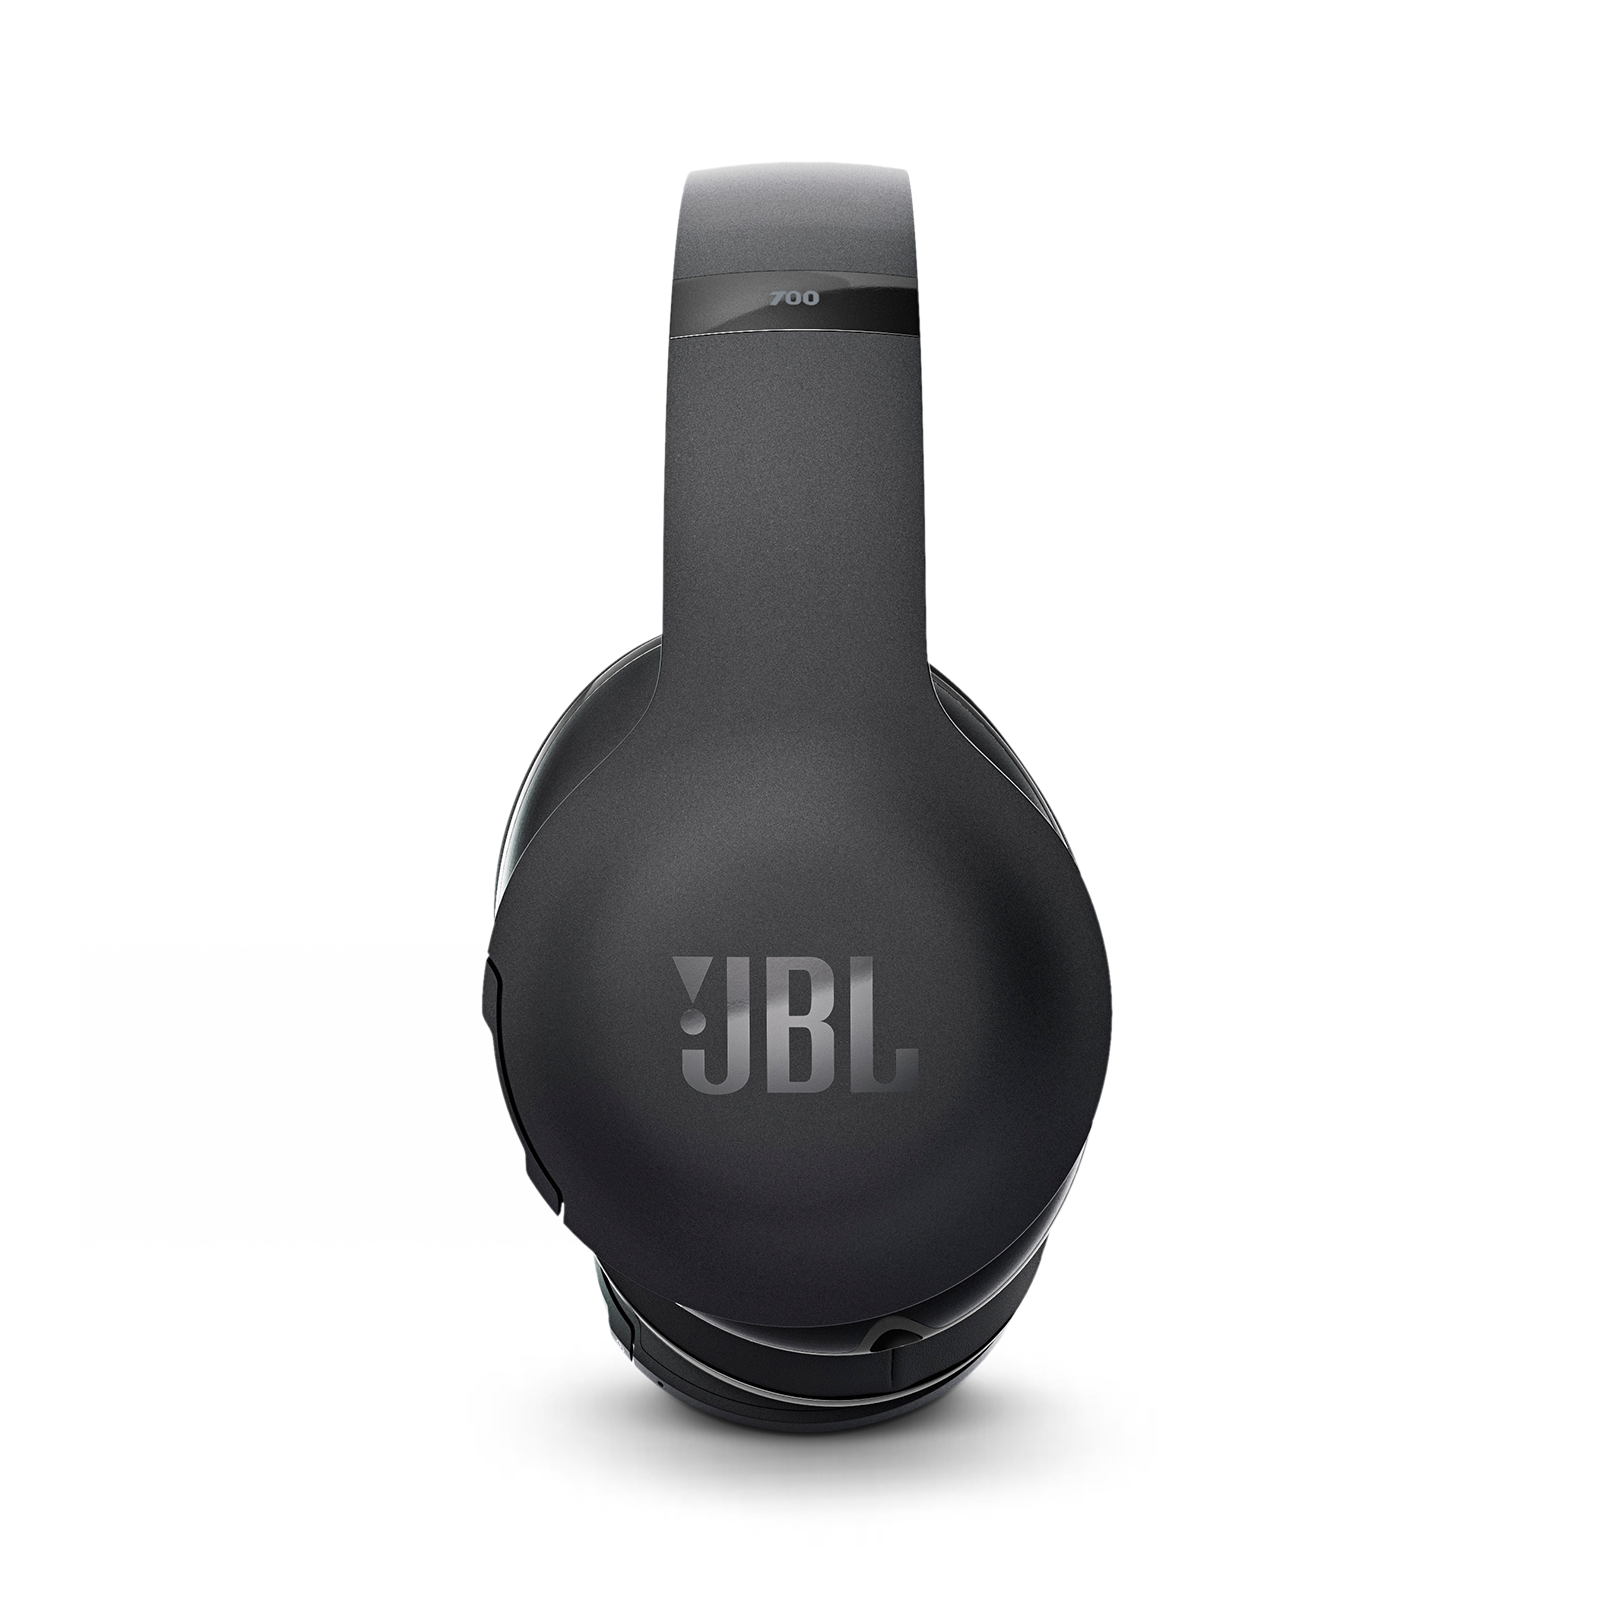 Jbl Everest 700 Bluetooth Headphones With 25 Hour Battery Headset Wireless Stereo S990 New Design